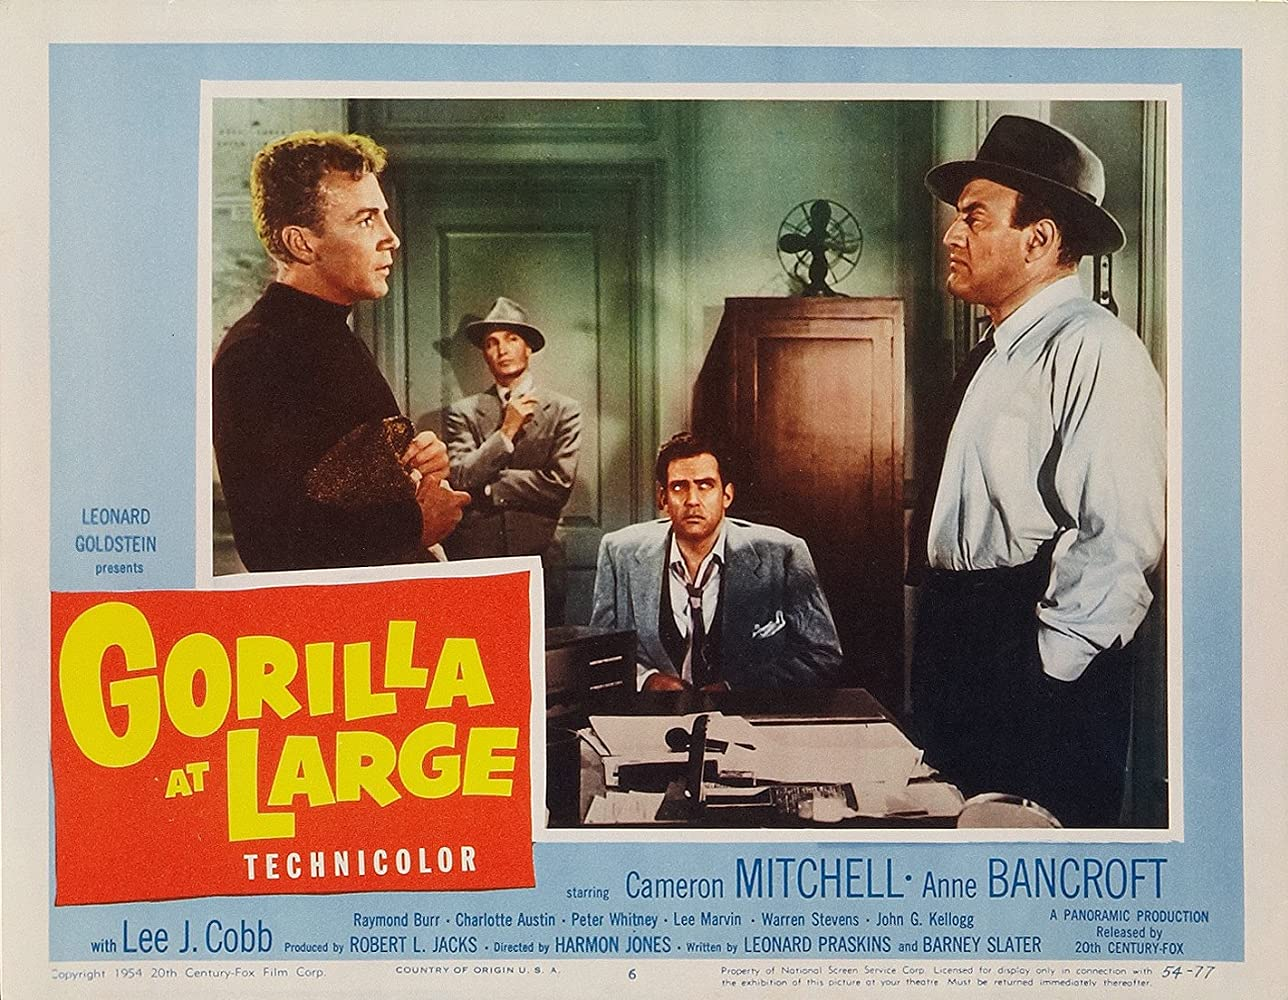 Anne Bancroft, Lee J. Cobb, Cameron Mitchell, and Warren Stevens in Gorilla at Large (1954)